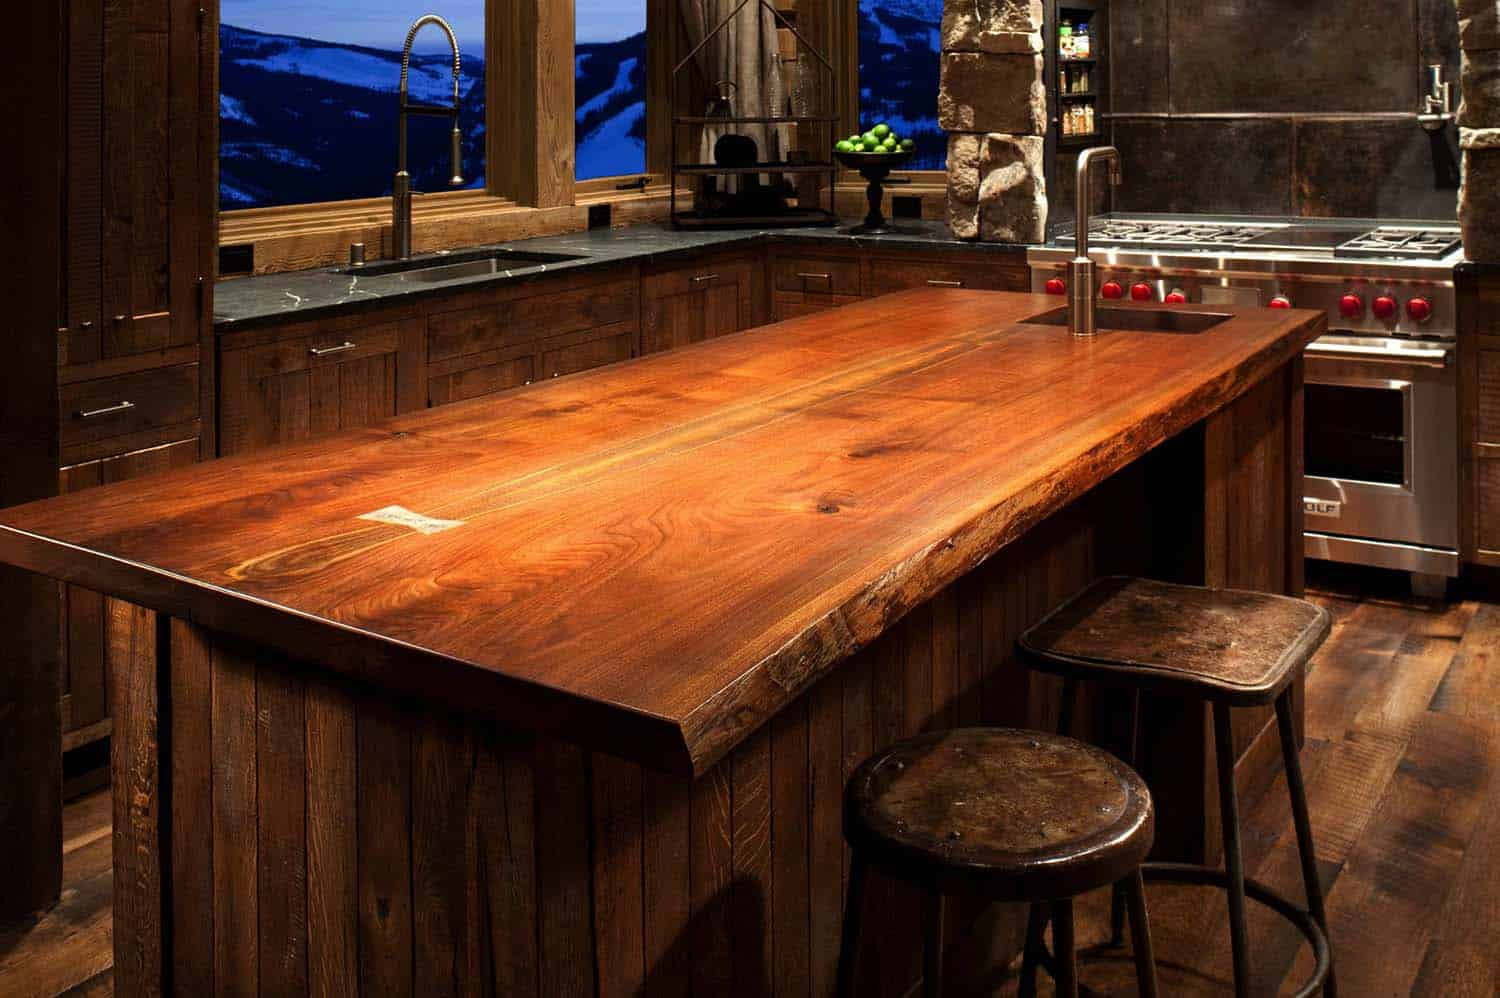 mountain-rustic-kitchen-island